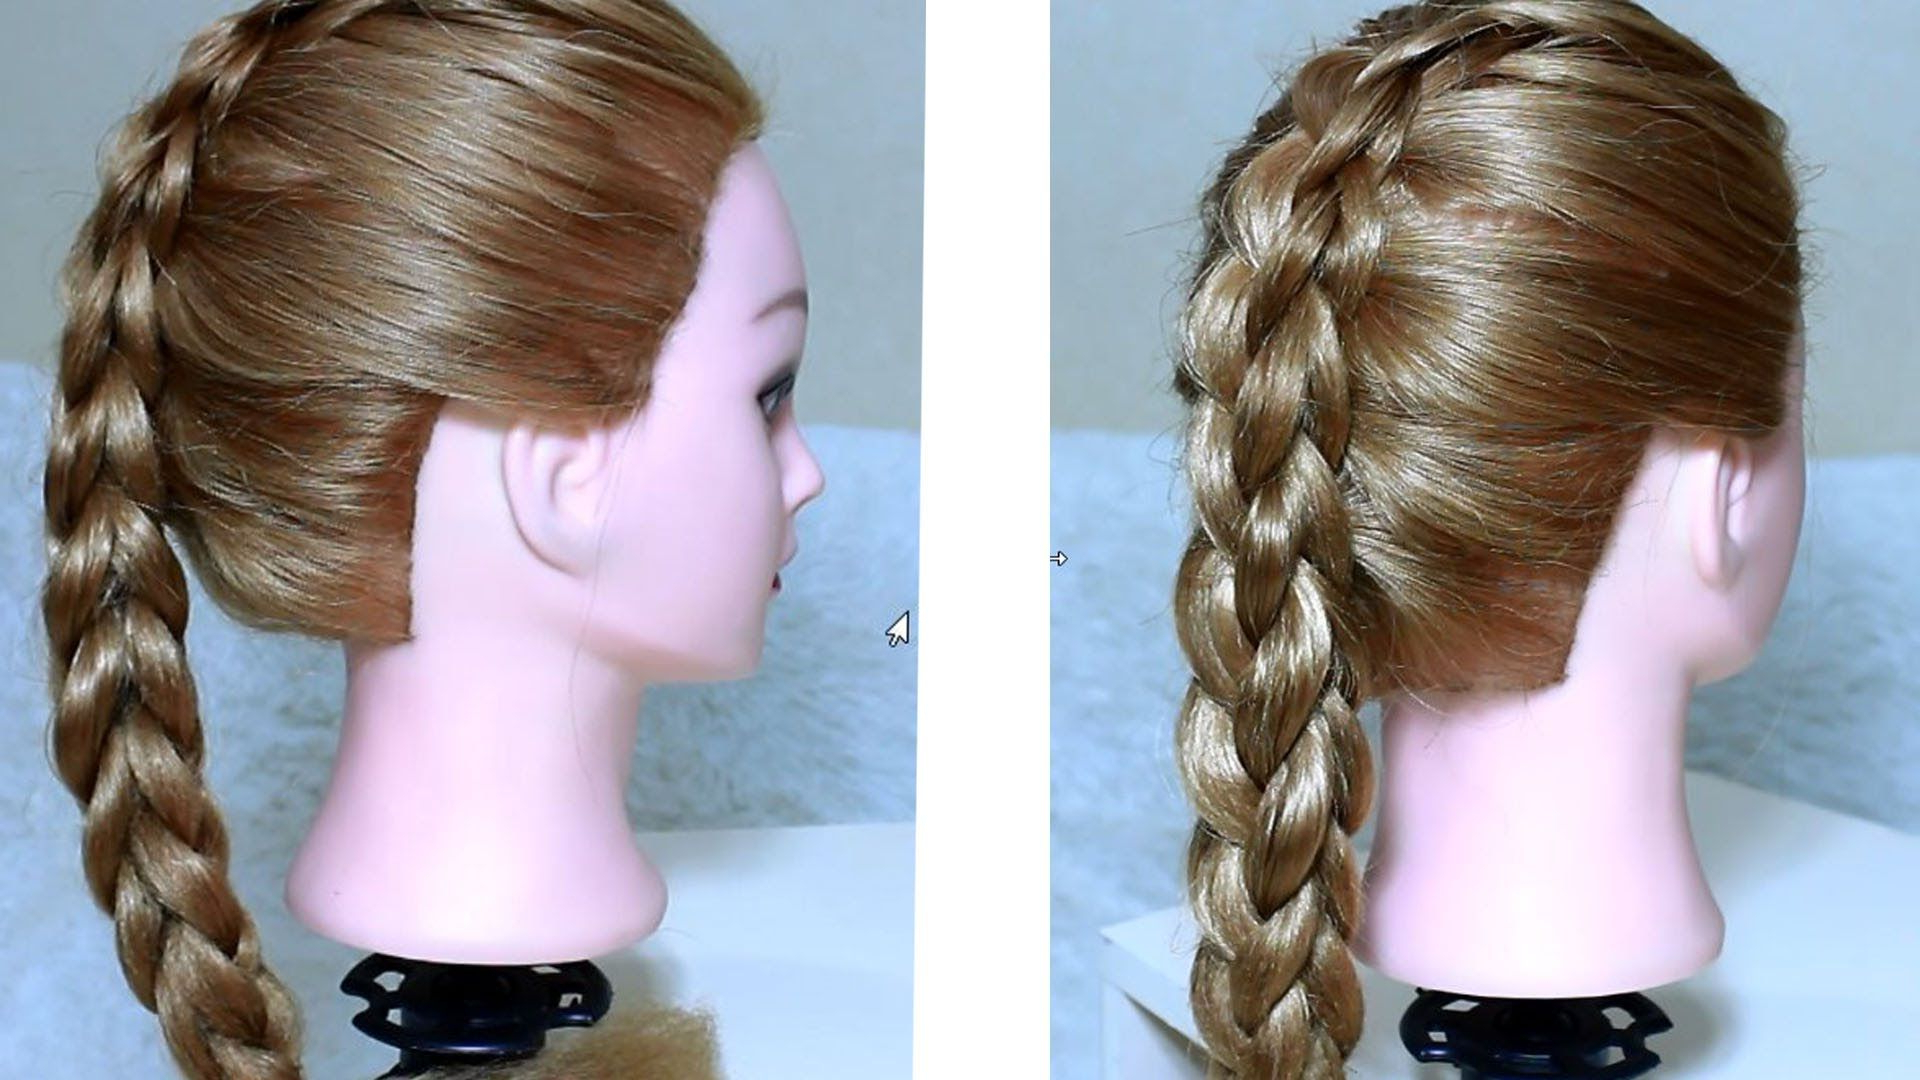 Box (Four Sided) French Braid / 3  Strand 3D Braid Tutorial Throughout Widely Used Three Strand Side Braided Hairstyles (View 5 of 20)